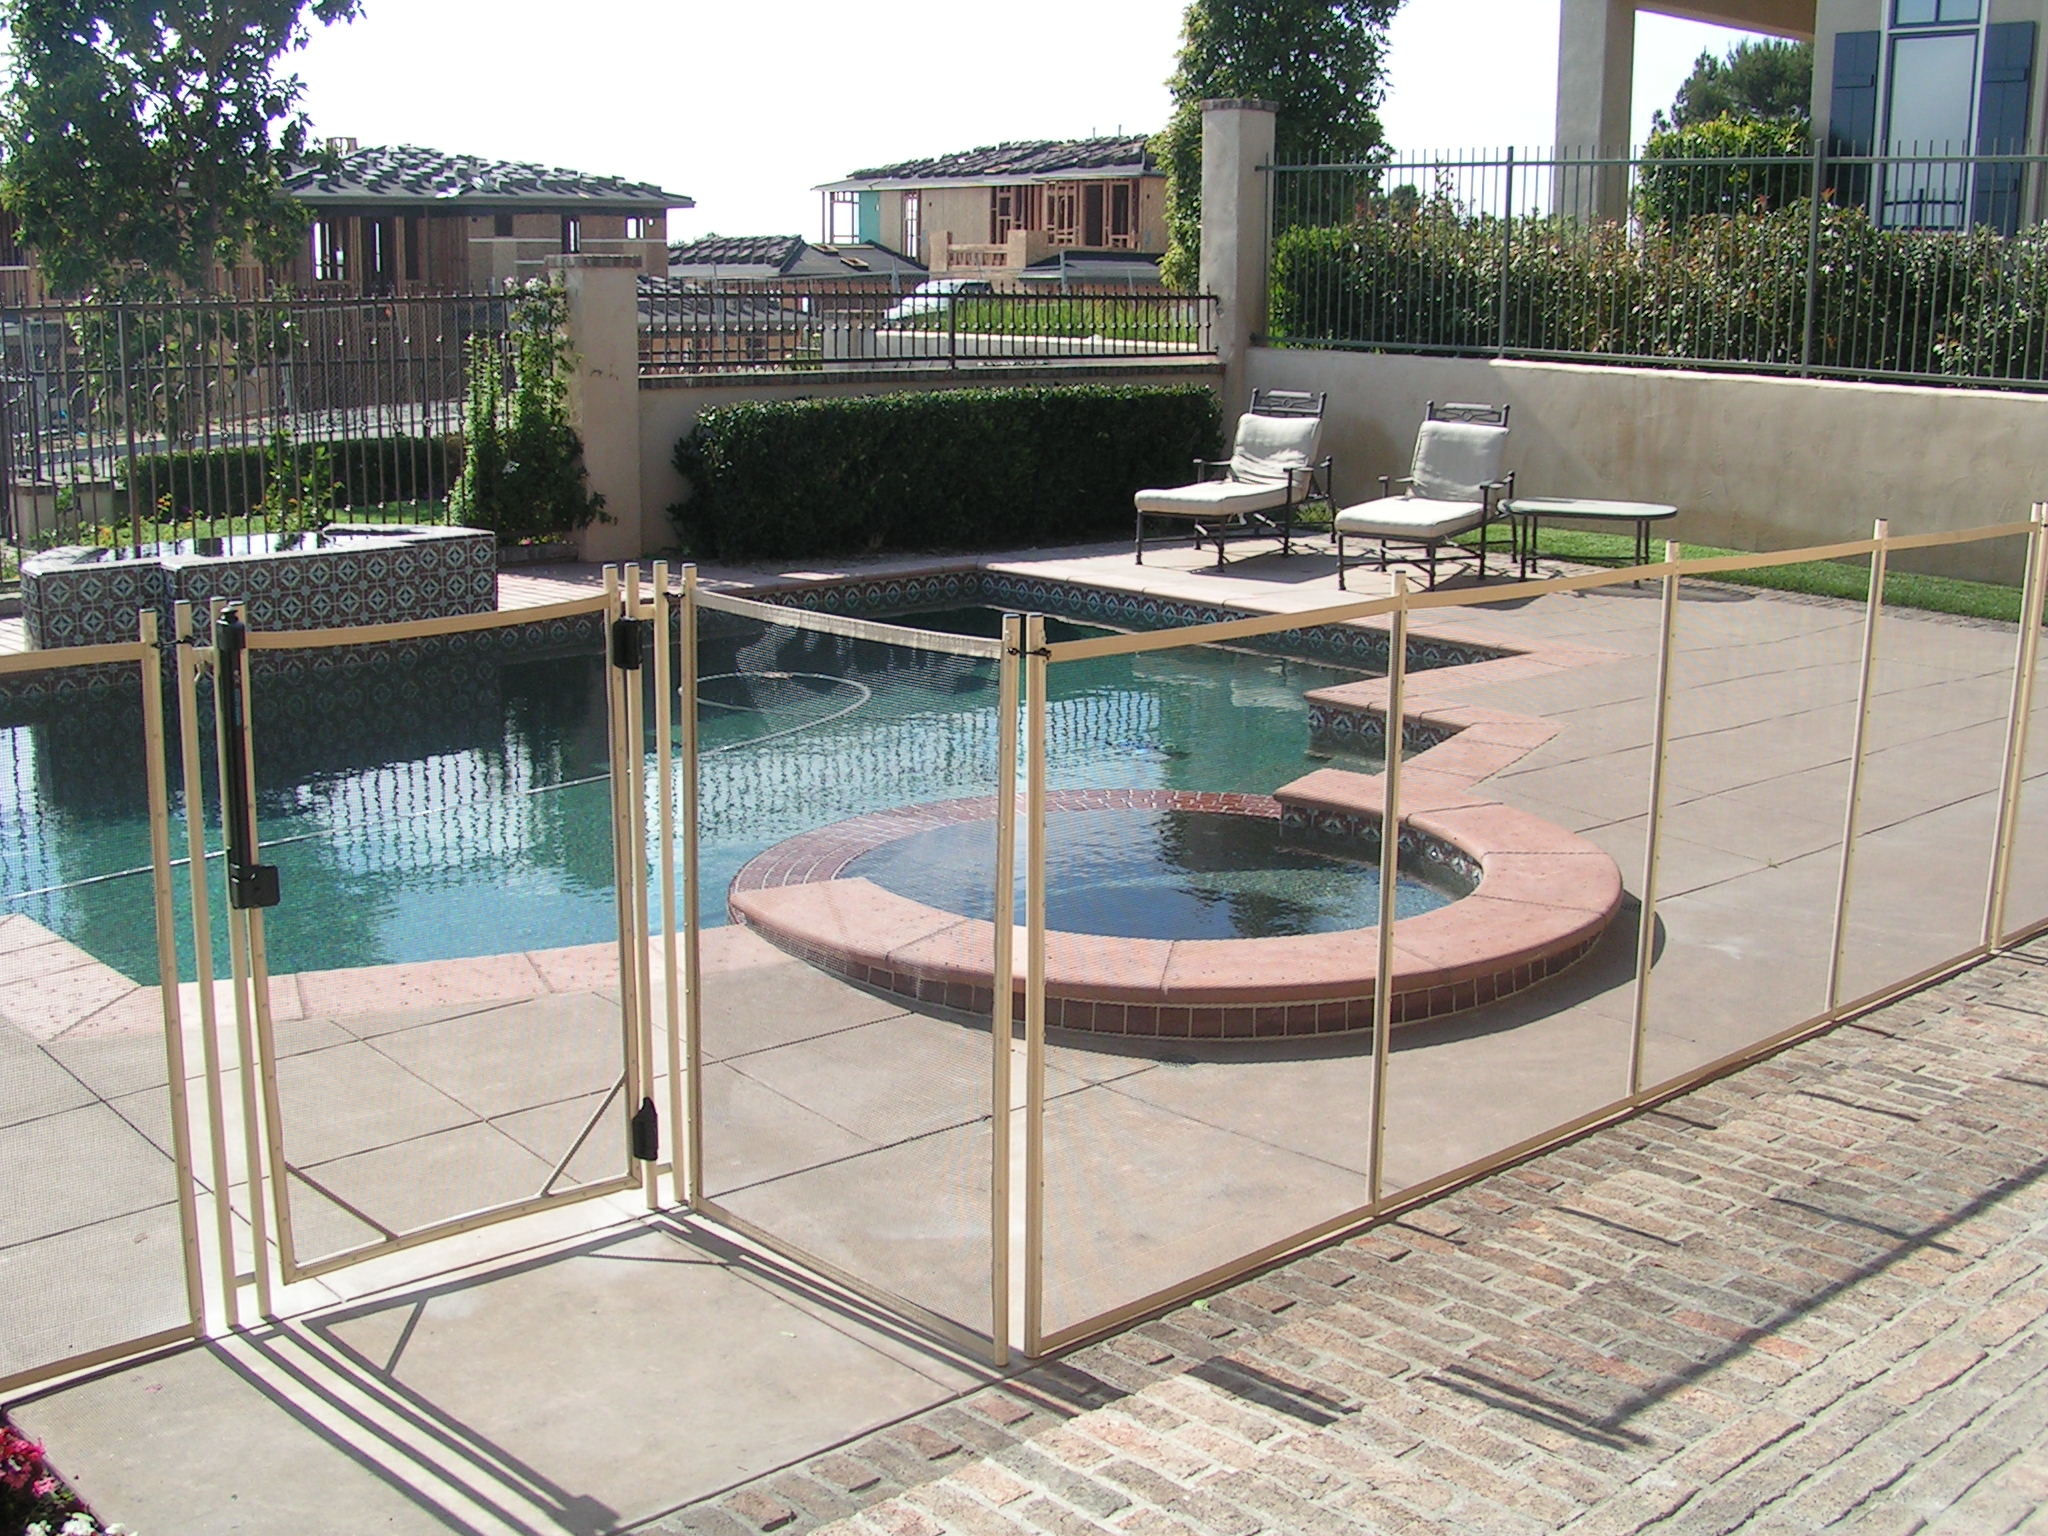 Removable Fence temporary pool fencing images - reverse search